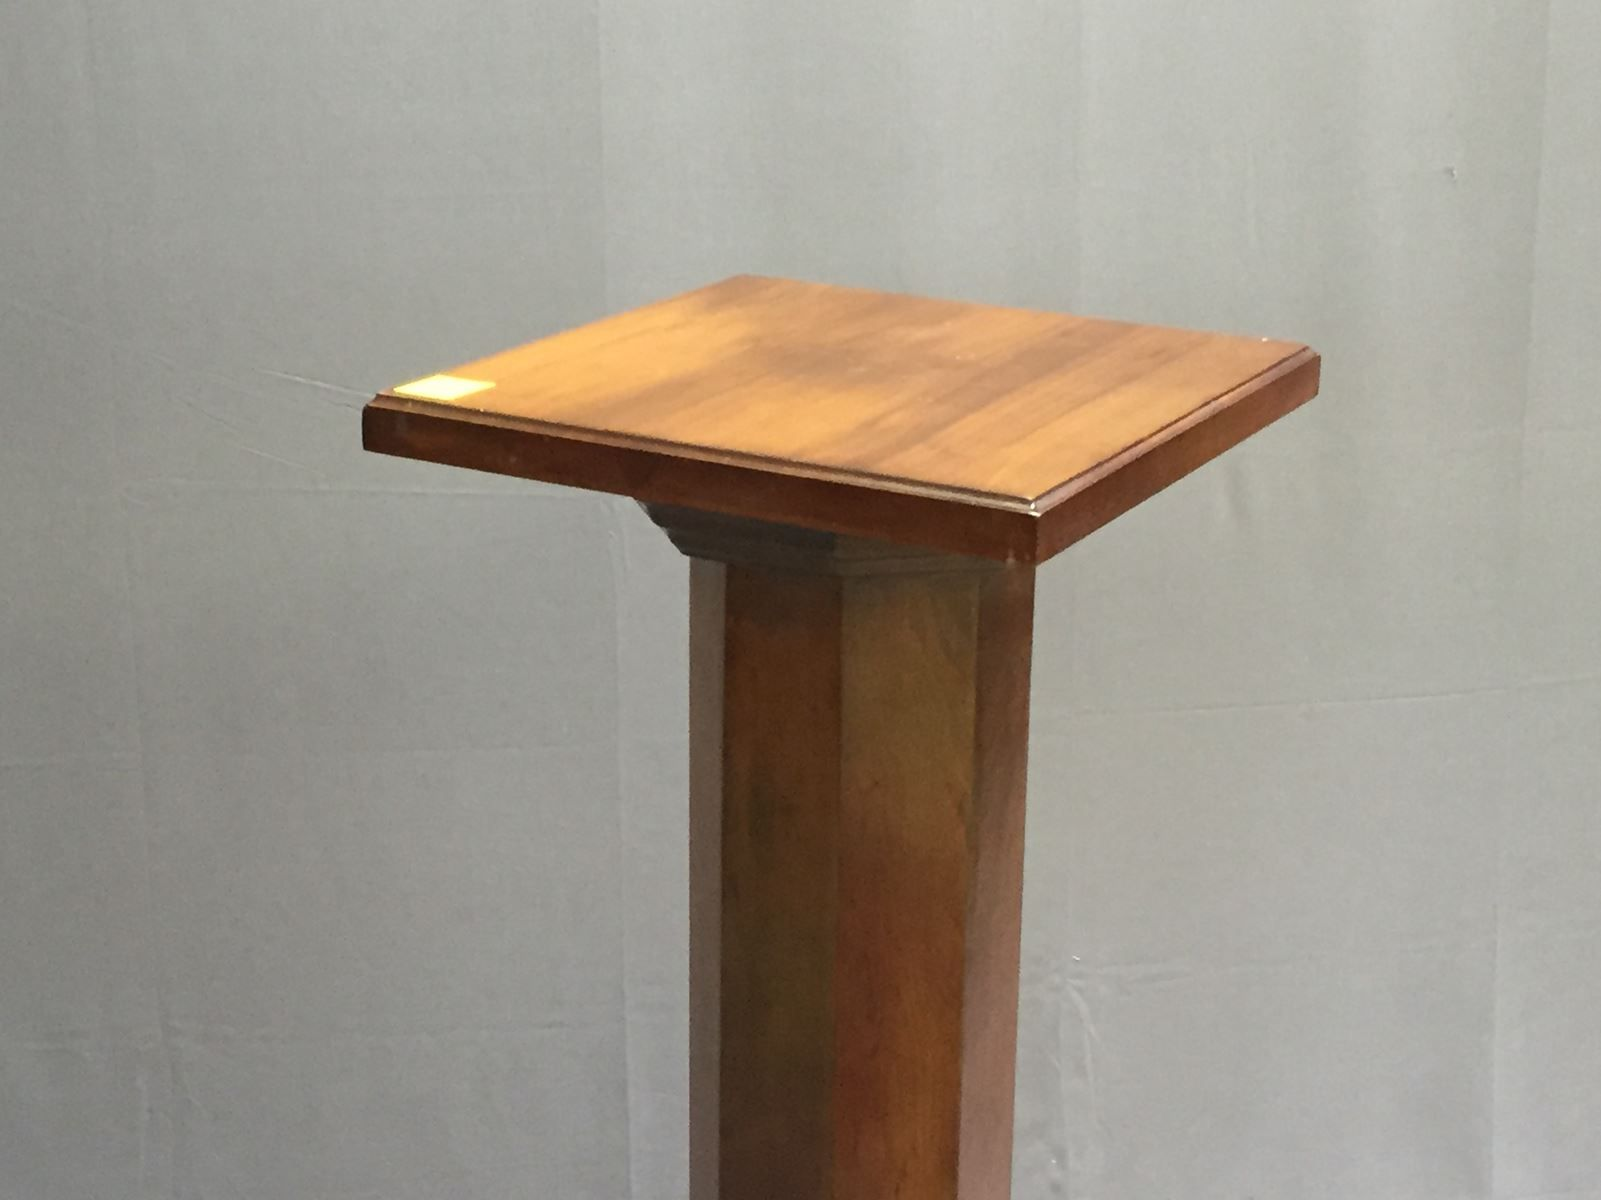 Mahogany art deco stool 1930s for sale at pamono for Meuble art deco 1930